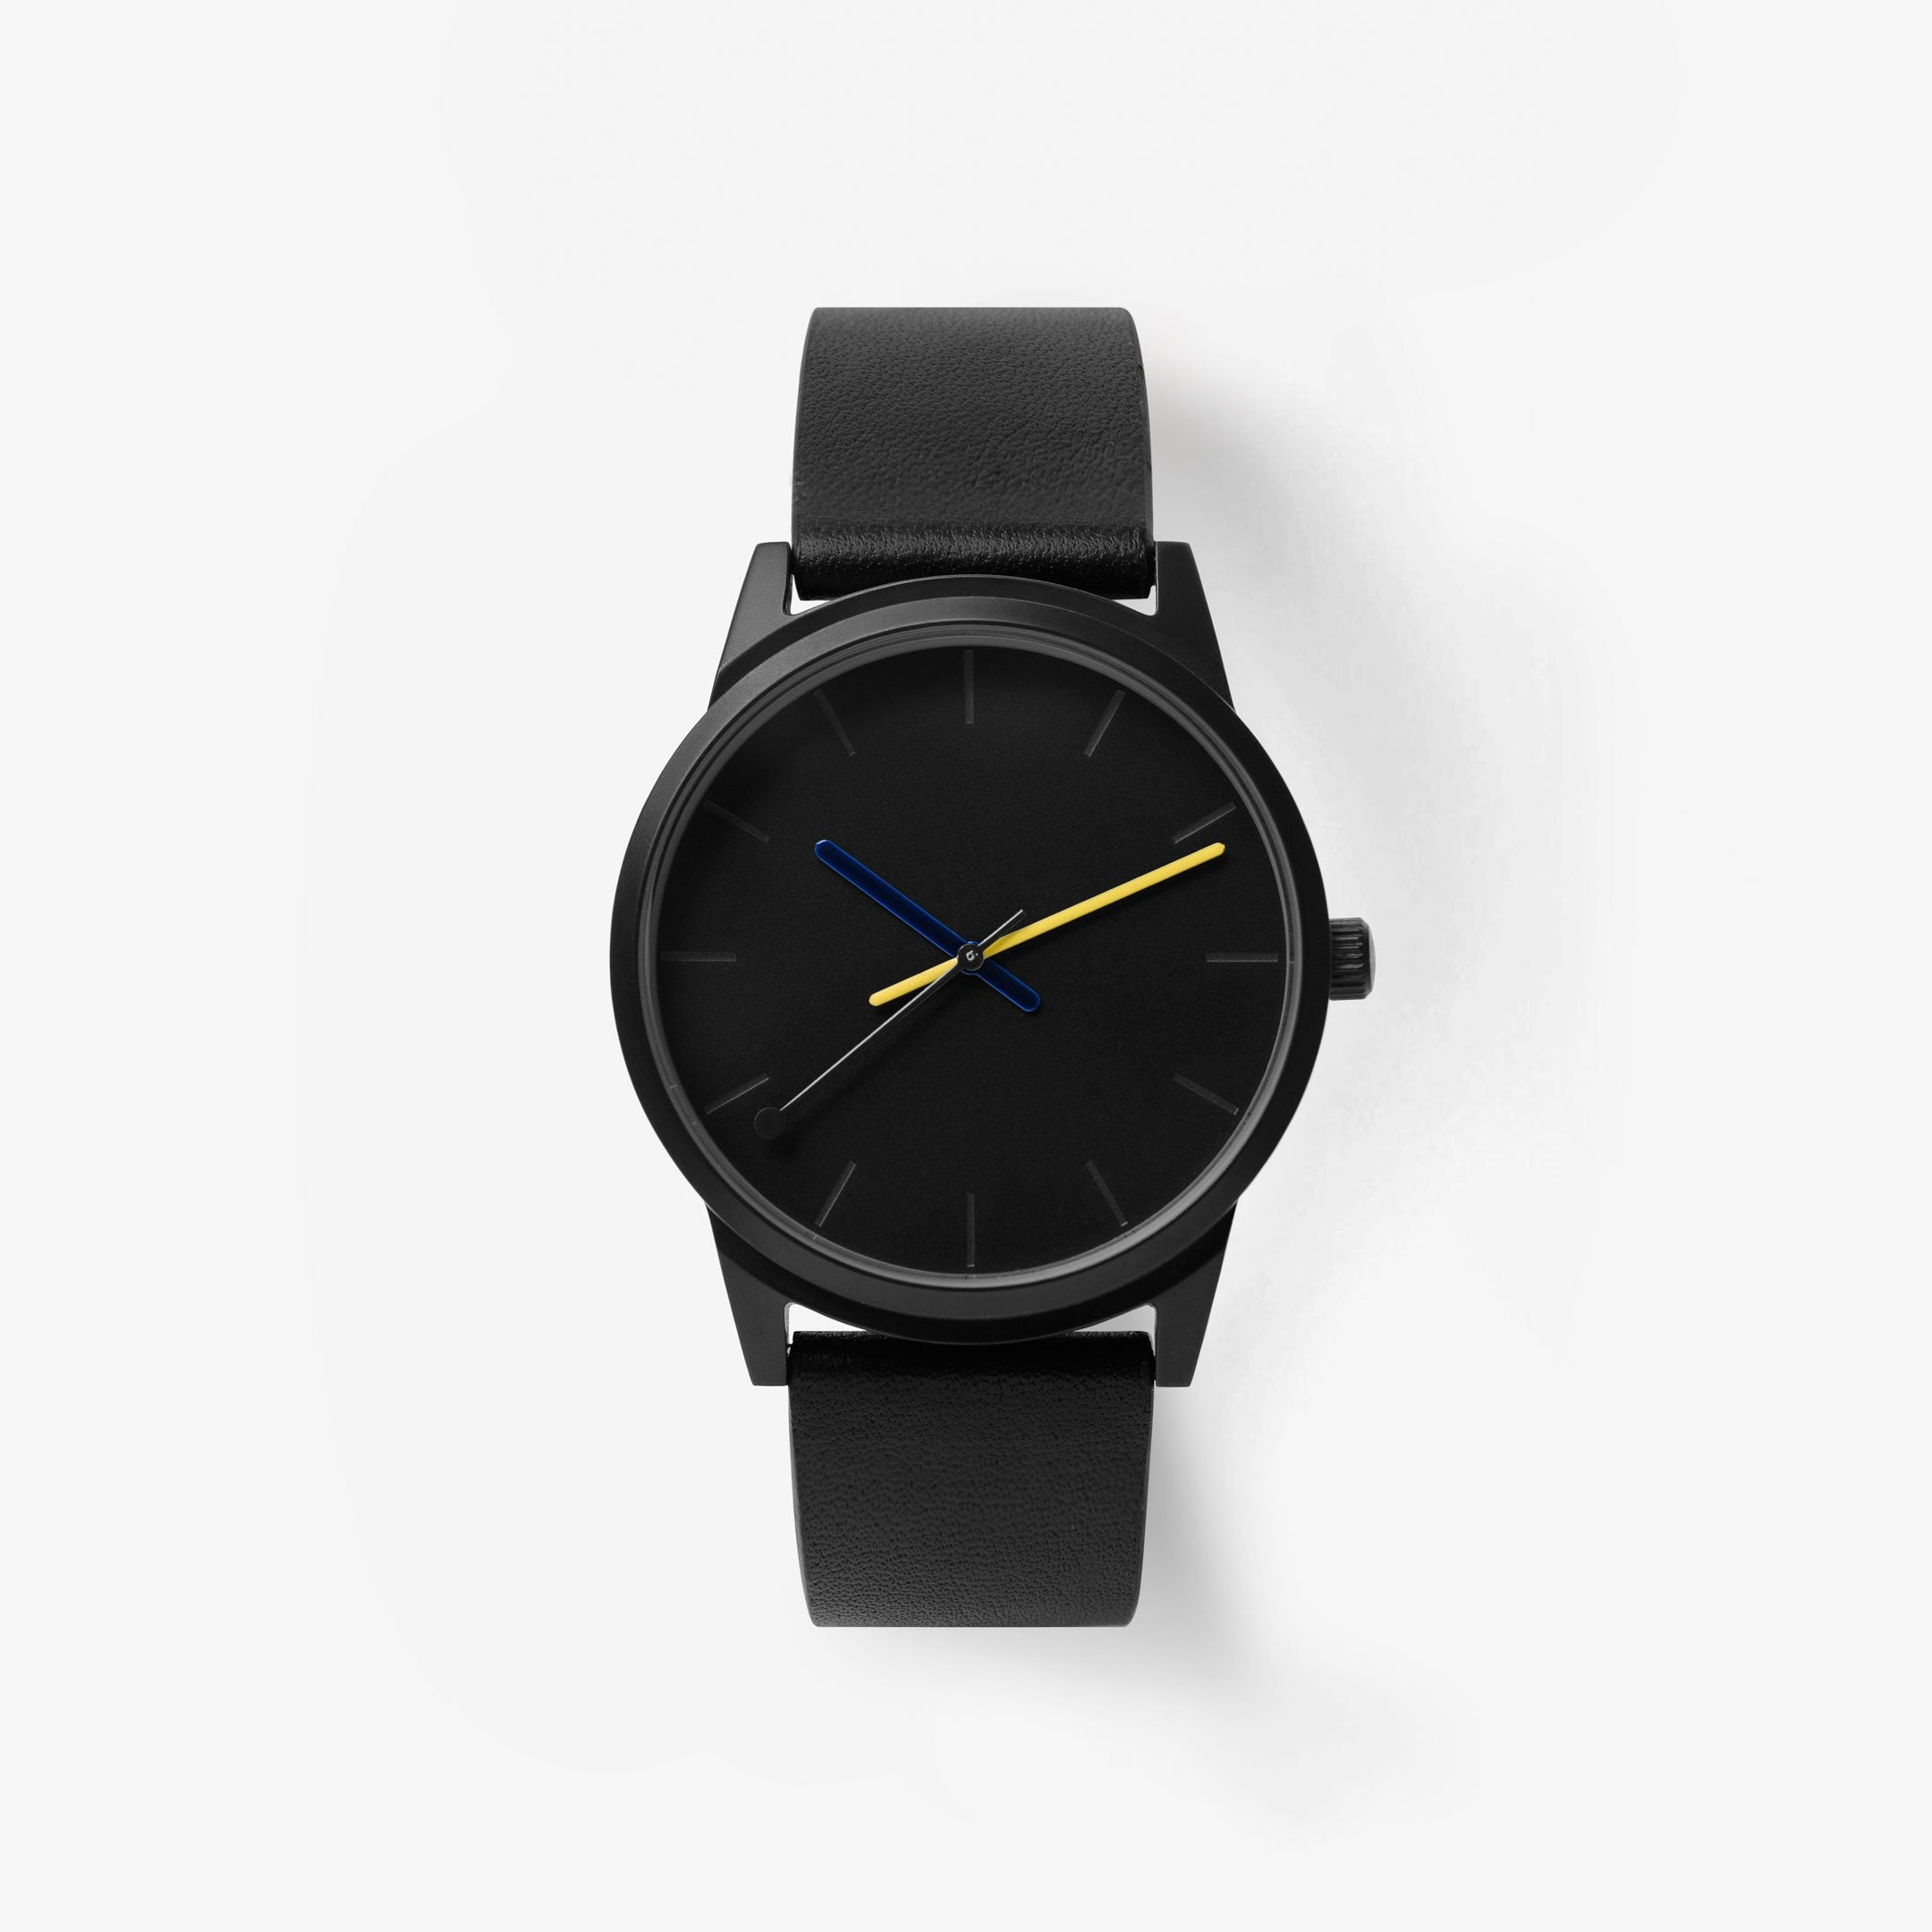 //cdn.shopify.com/s/files/1/0879/6650/products/breda-poketo-5021a-spectra-black-leather-band-collaboration-watch-front_1024x1024.jpg?v=1579907954